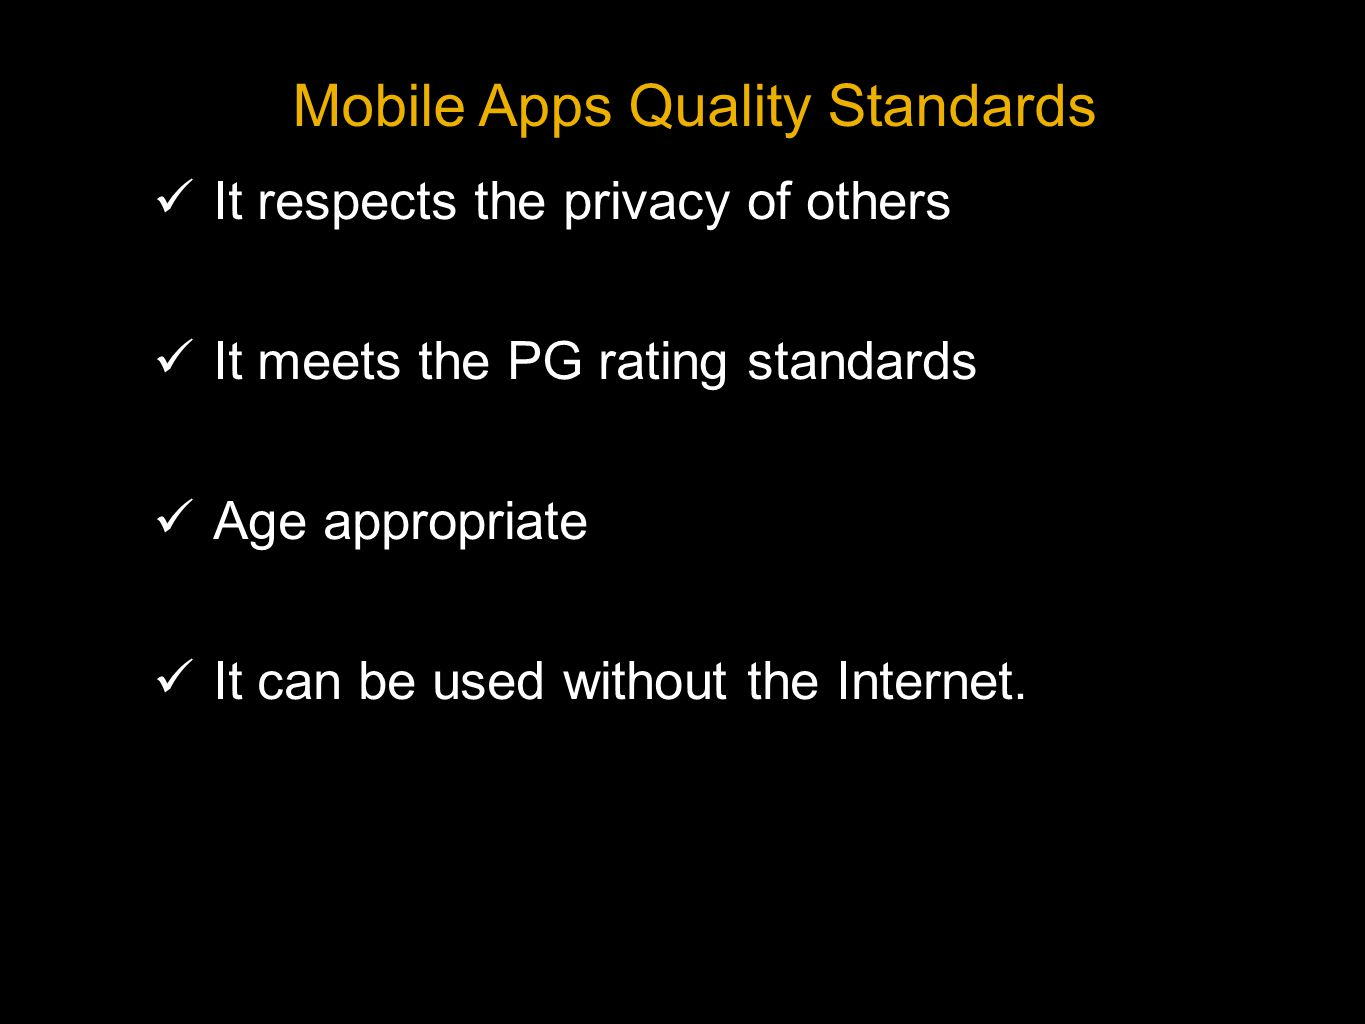 It respects the privacy of others It meets the PG rating standards Age appropriate It can be used without the Internet.